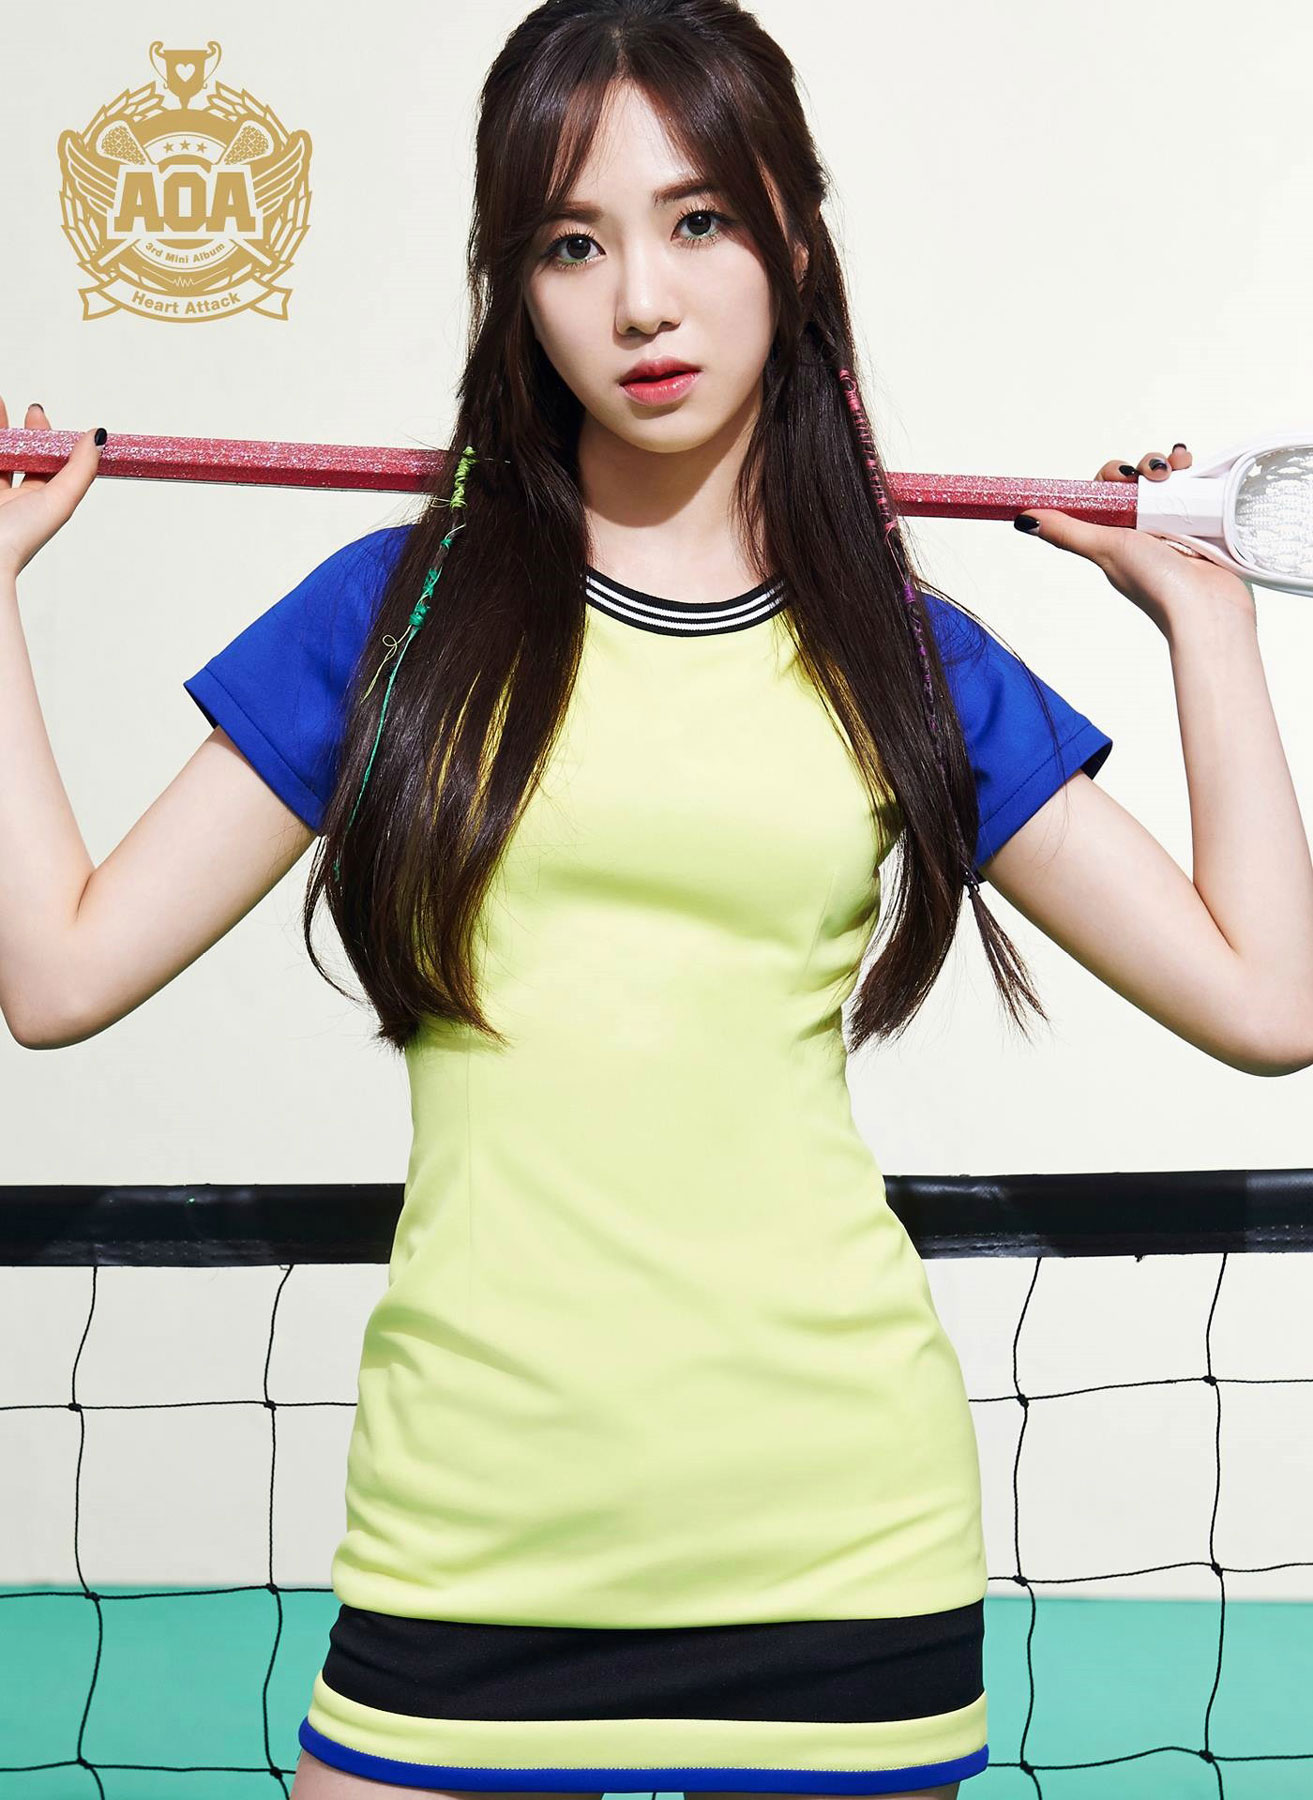 AOA Mina Heart Attack Korean mini album